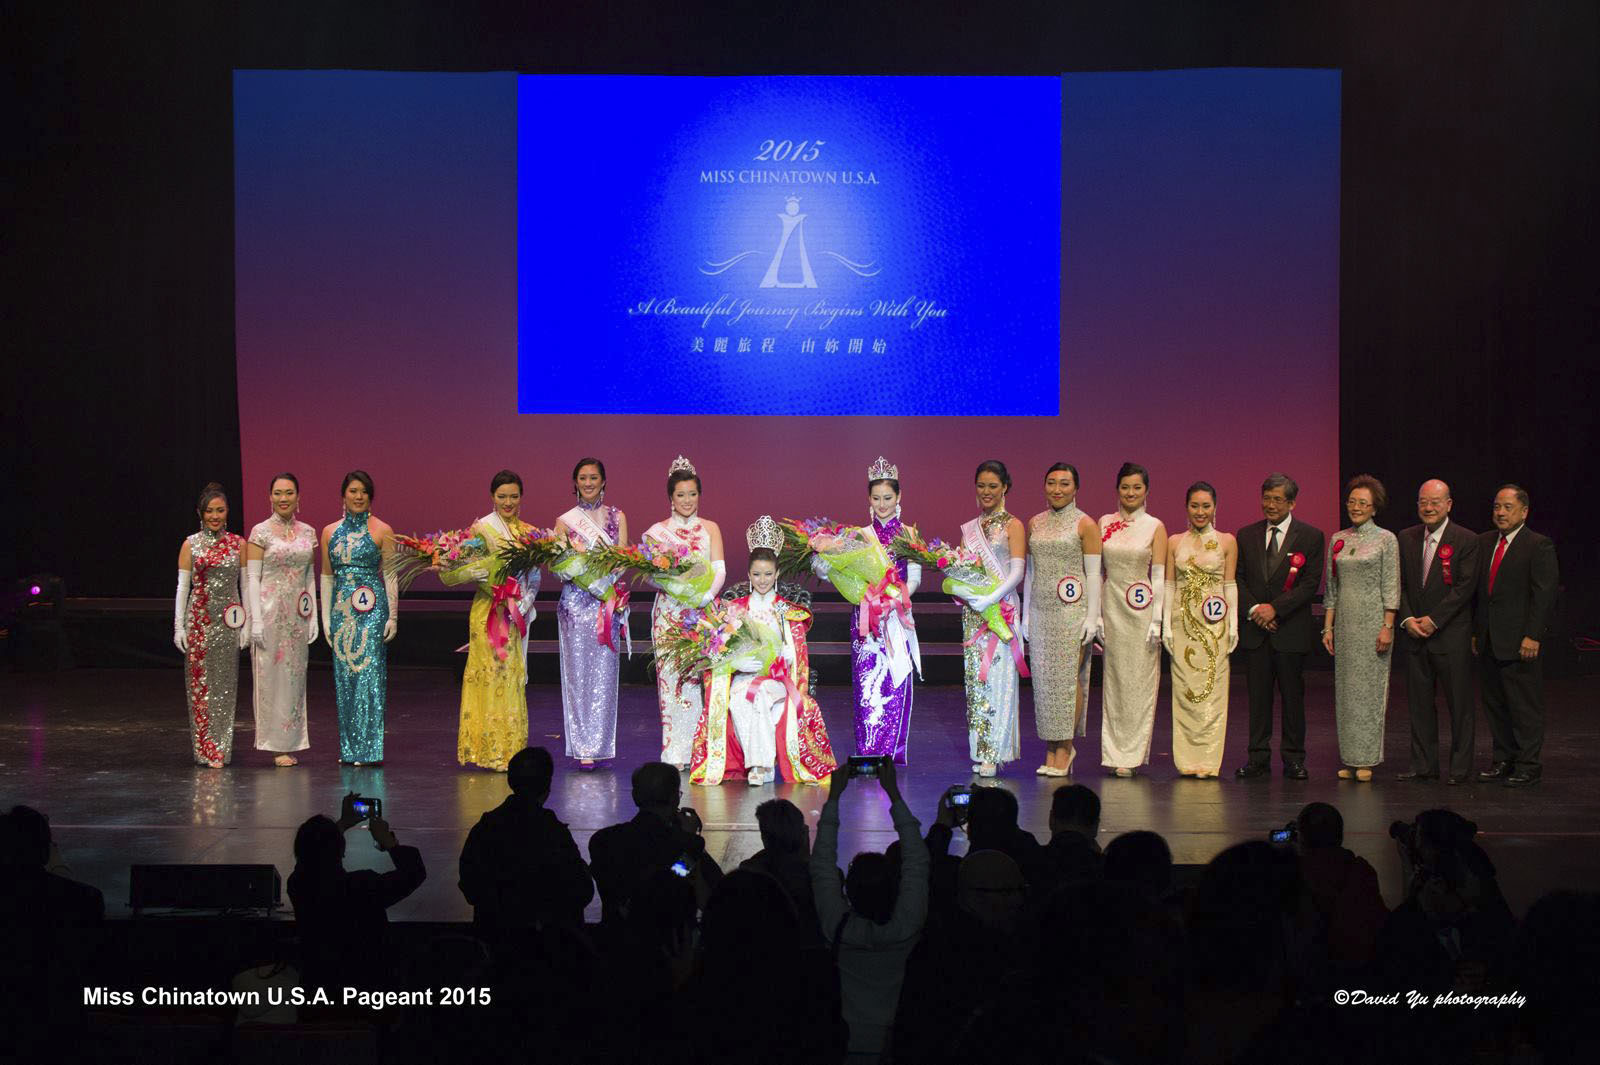 2015 MIss Chinatown USA Pageant - ©2015 David Yu Photography - All Rights Reserved